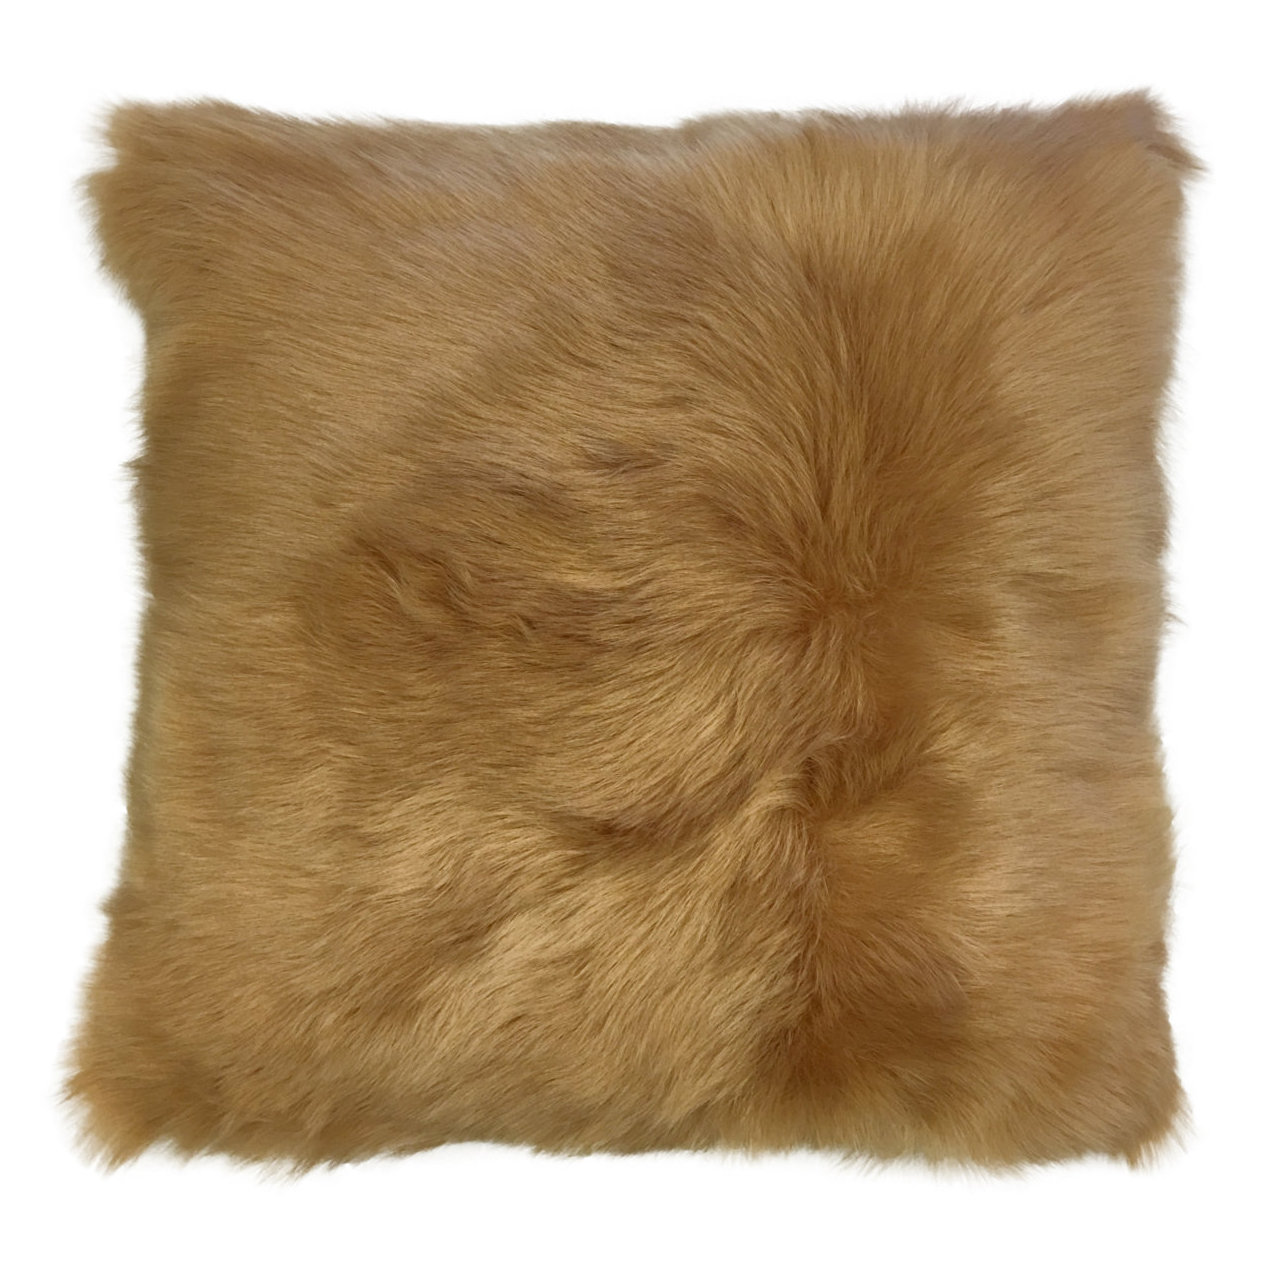 Shearling Pillow-Biscotte-50x50cm-SPLILS2545050 - ANVOGG FEEL SHEARLING | ANVOGG